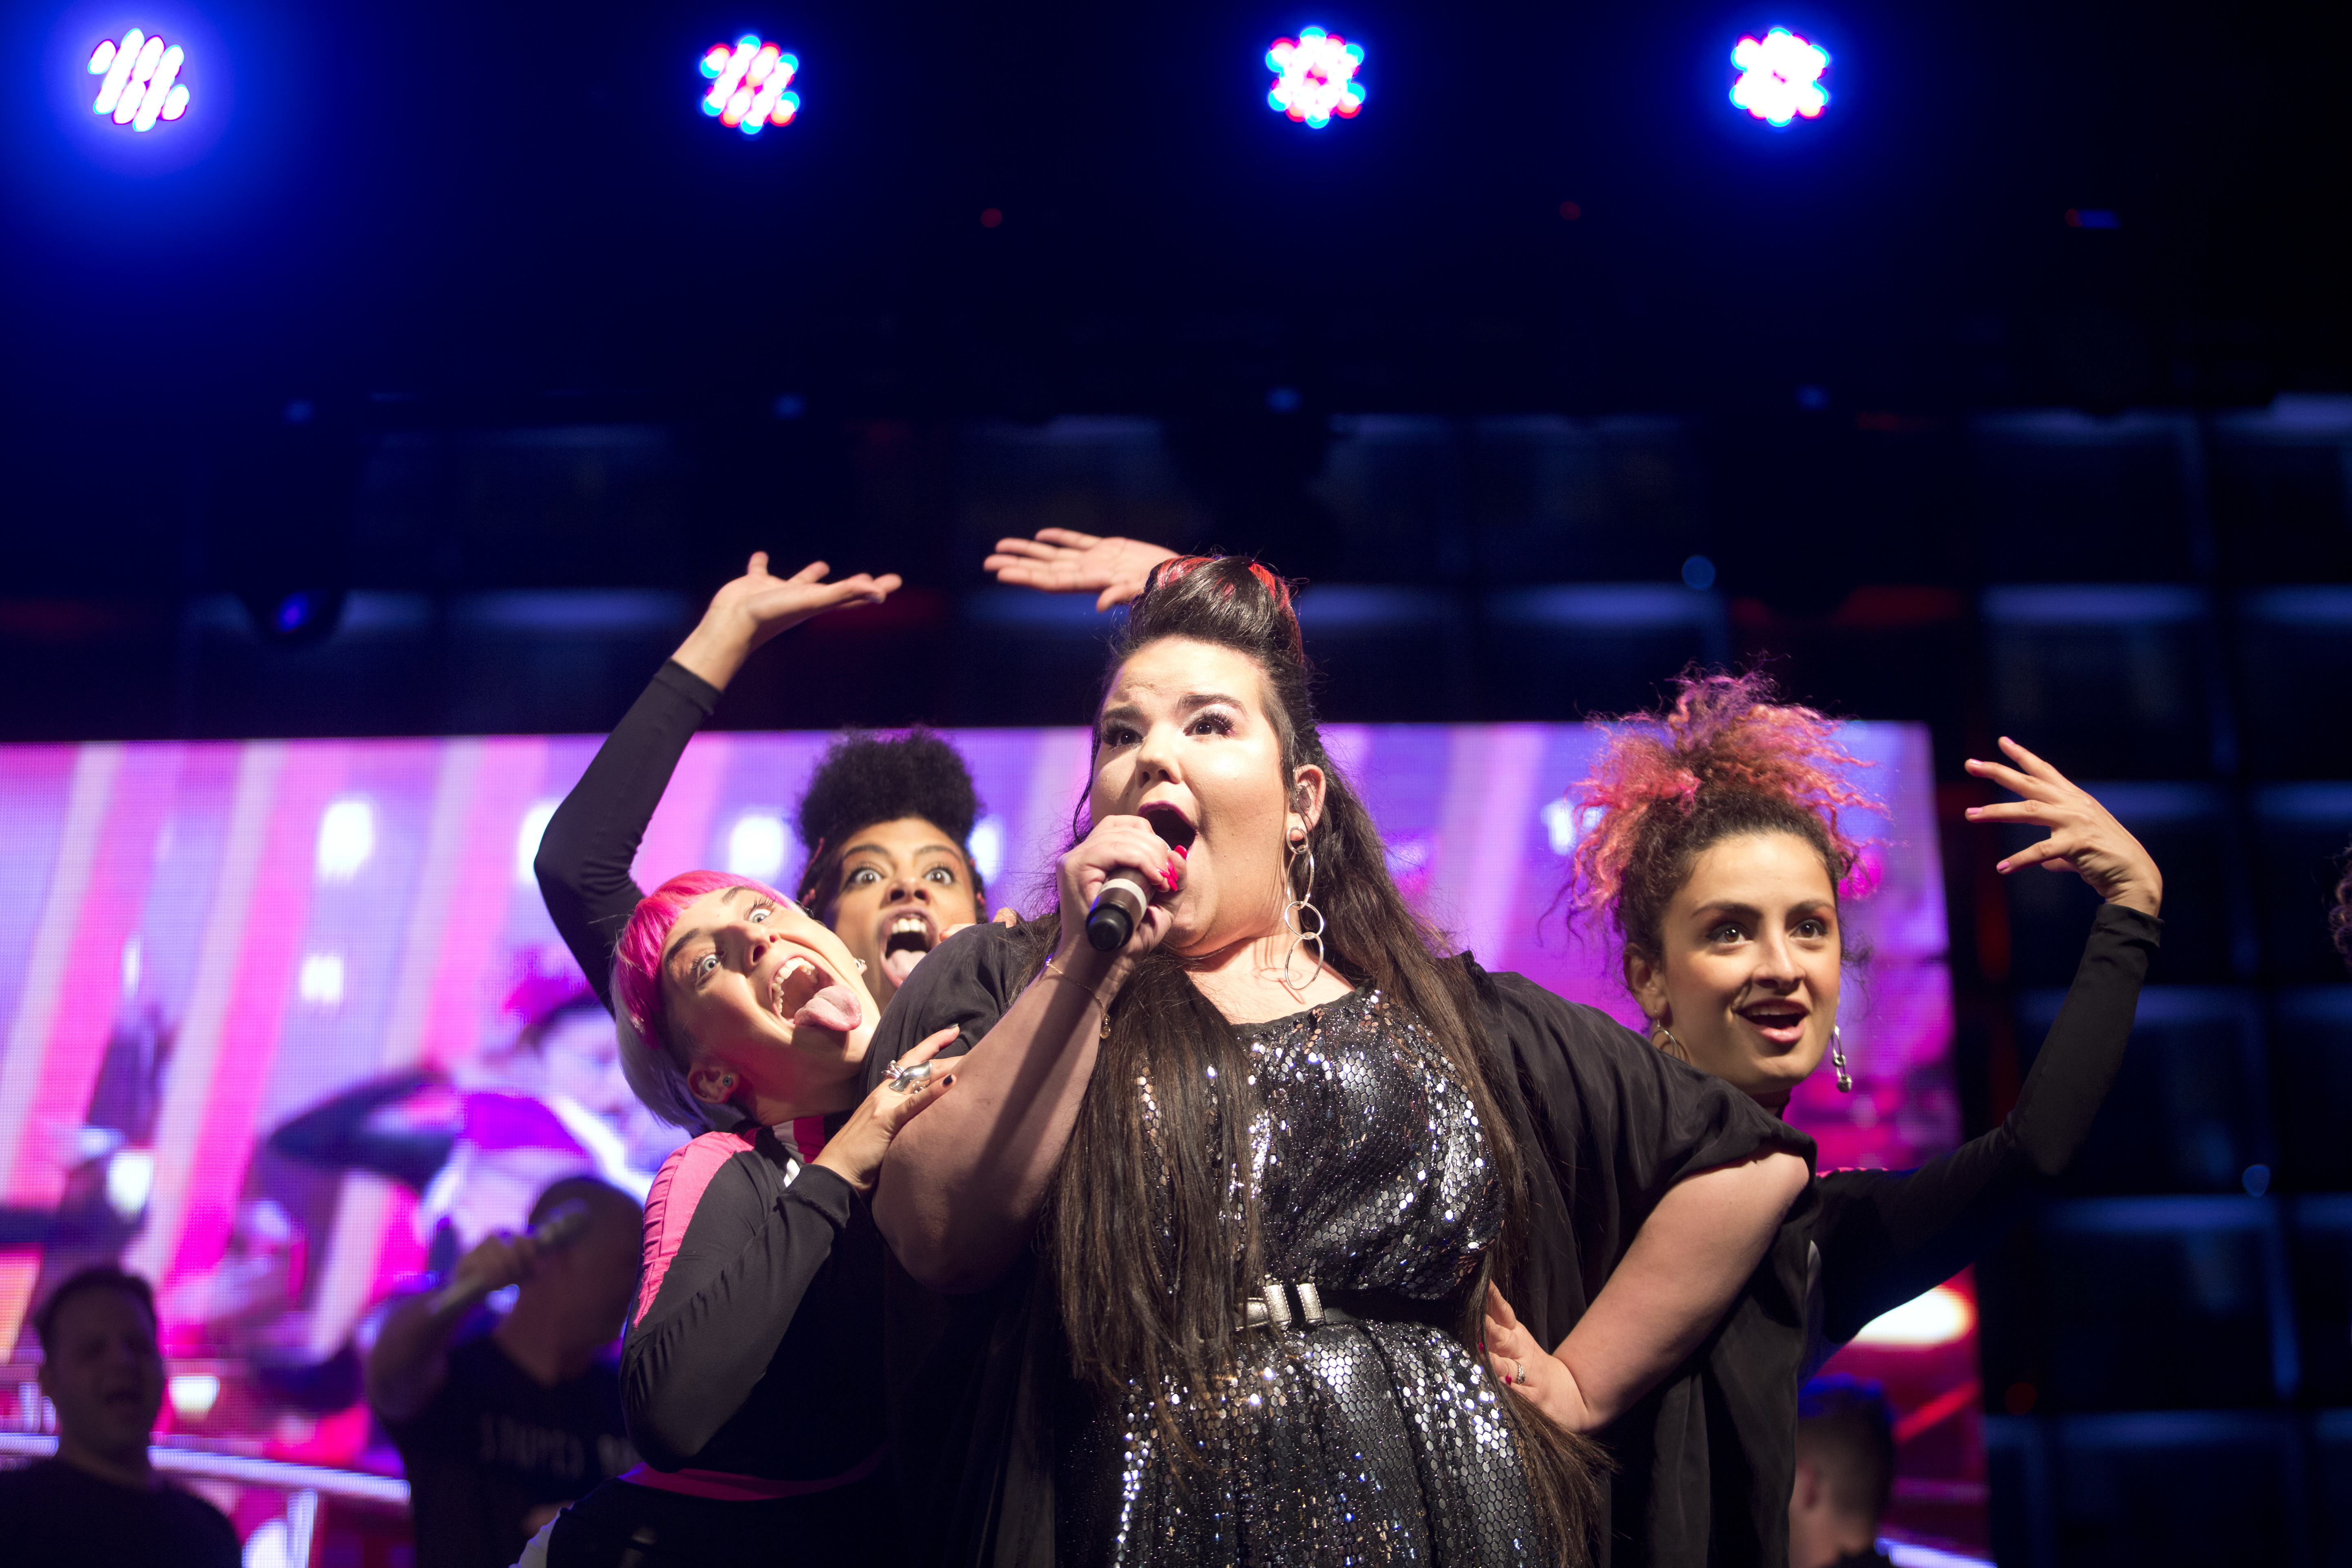 Israeli singer Netta Barzilai, center, who won the 2018 Eurovision song contest, performs at Rabin Square in Tel Aviv, Israel, May 14, 2018.